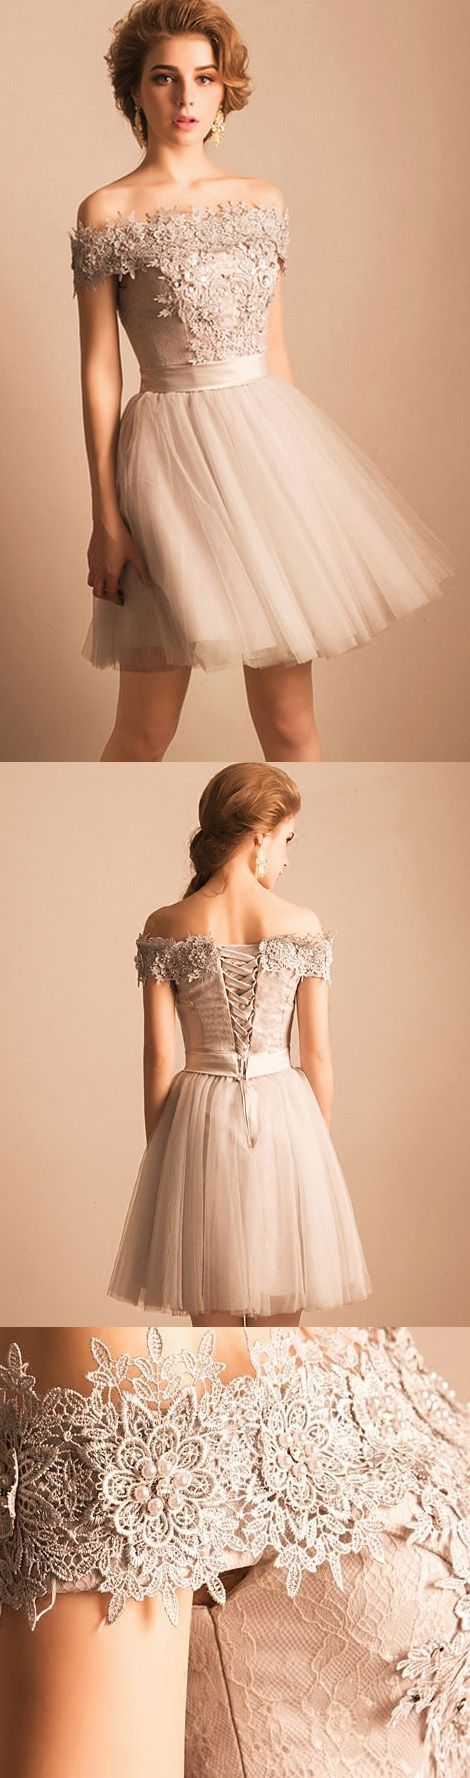 best new prom dresses images on pinterest